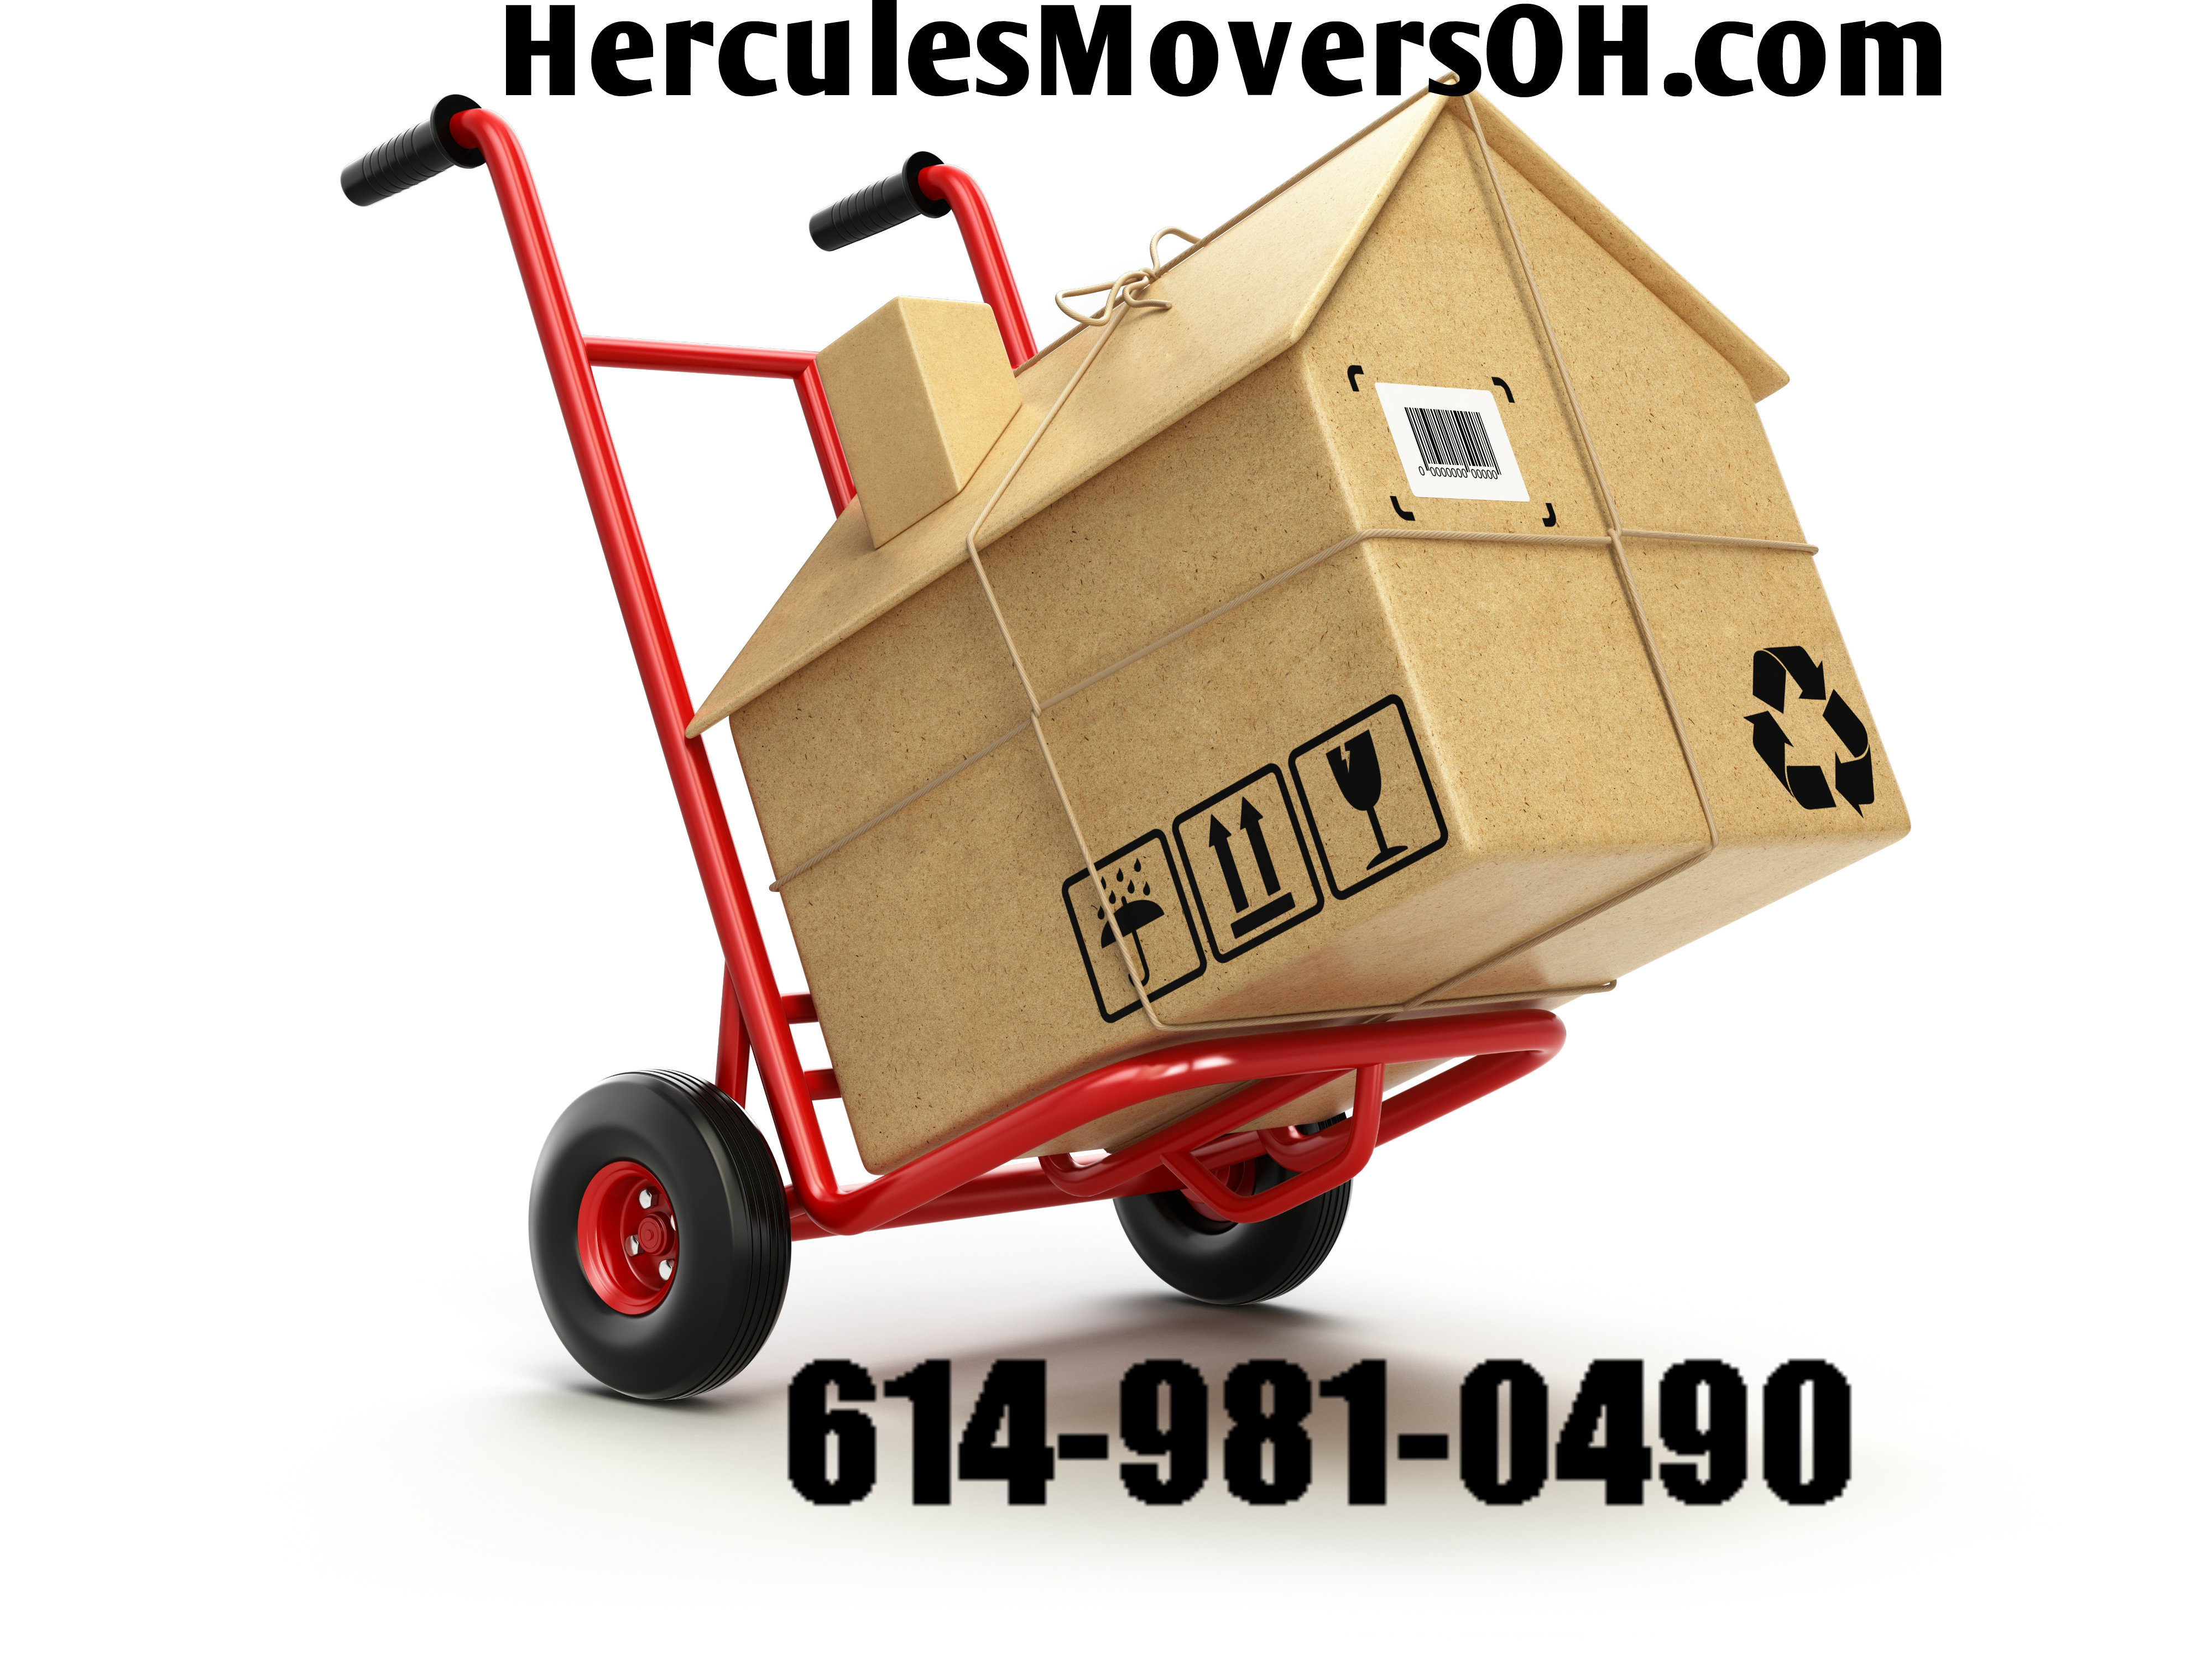 hercules movers llc in gahanna oh 43230. Black Bedroom Furniture Sets. Home Design Ideas